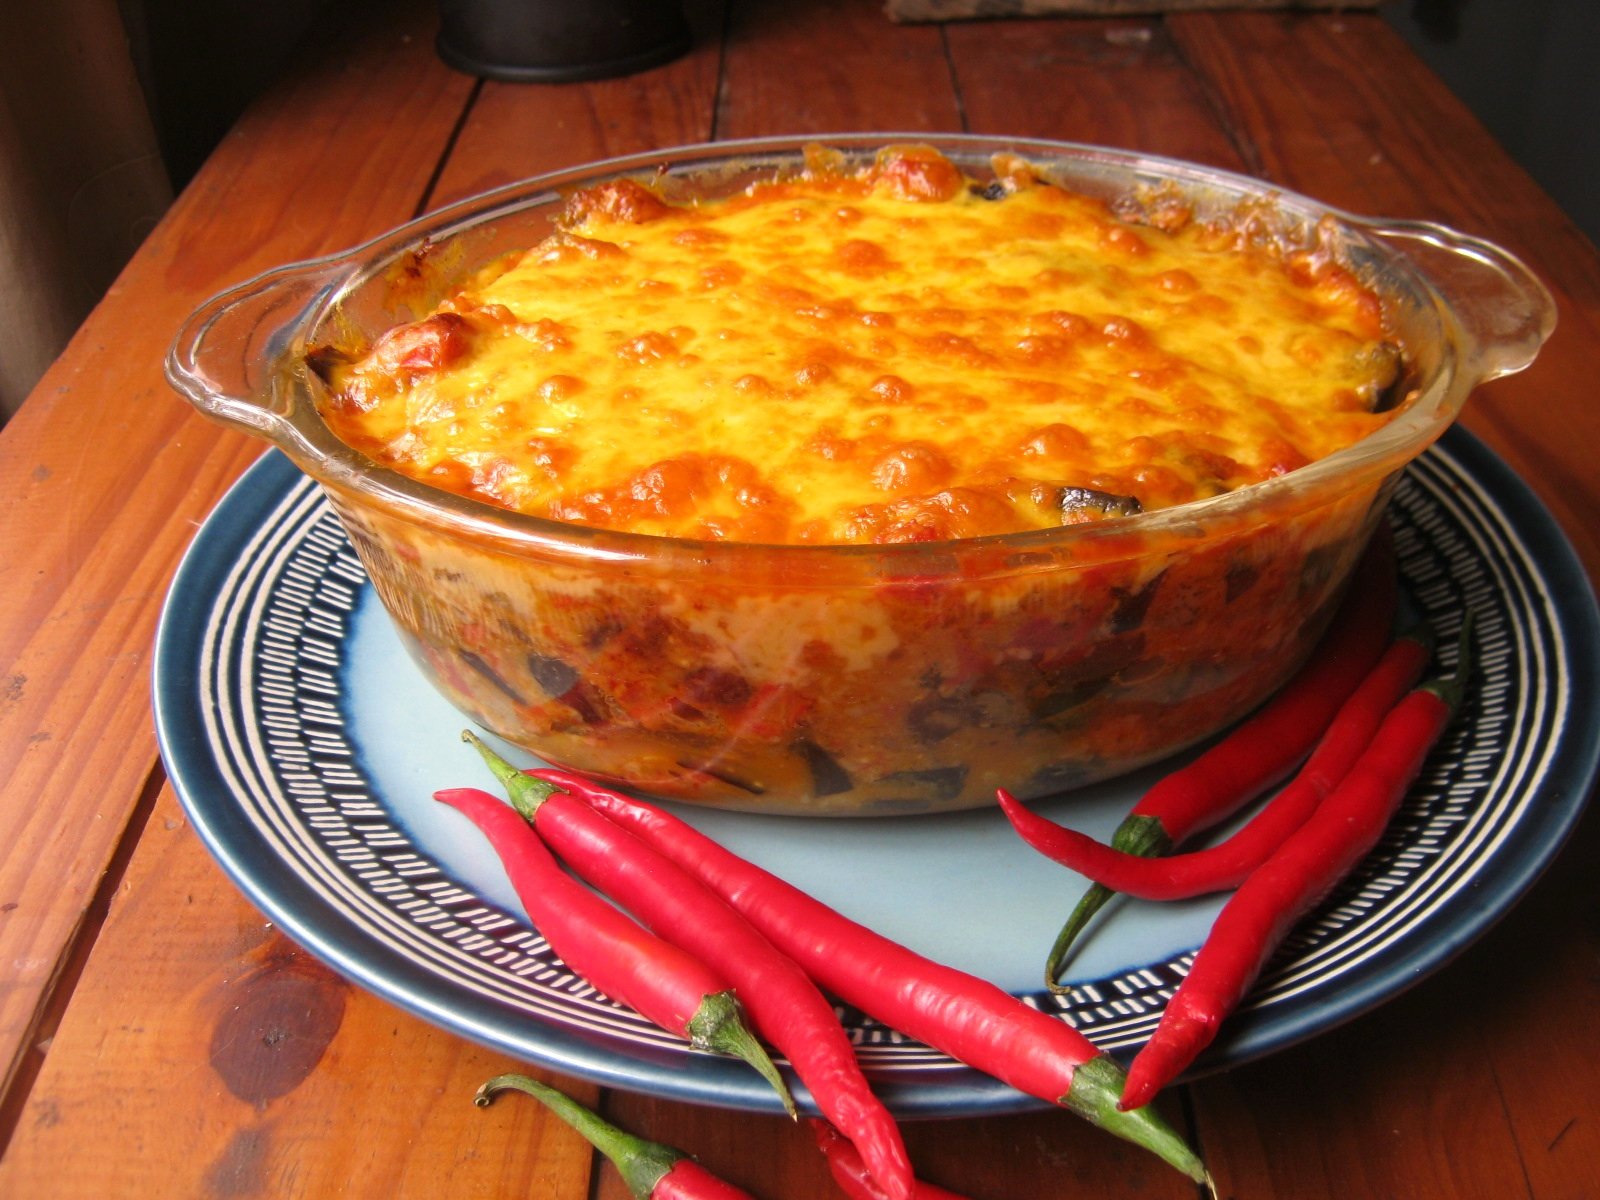 Cape-vegetable-casserole is a fruity and spicy dish with lots of healthy ingredients.